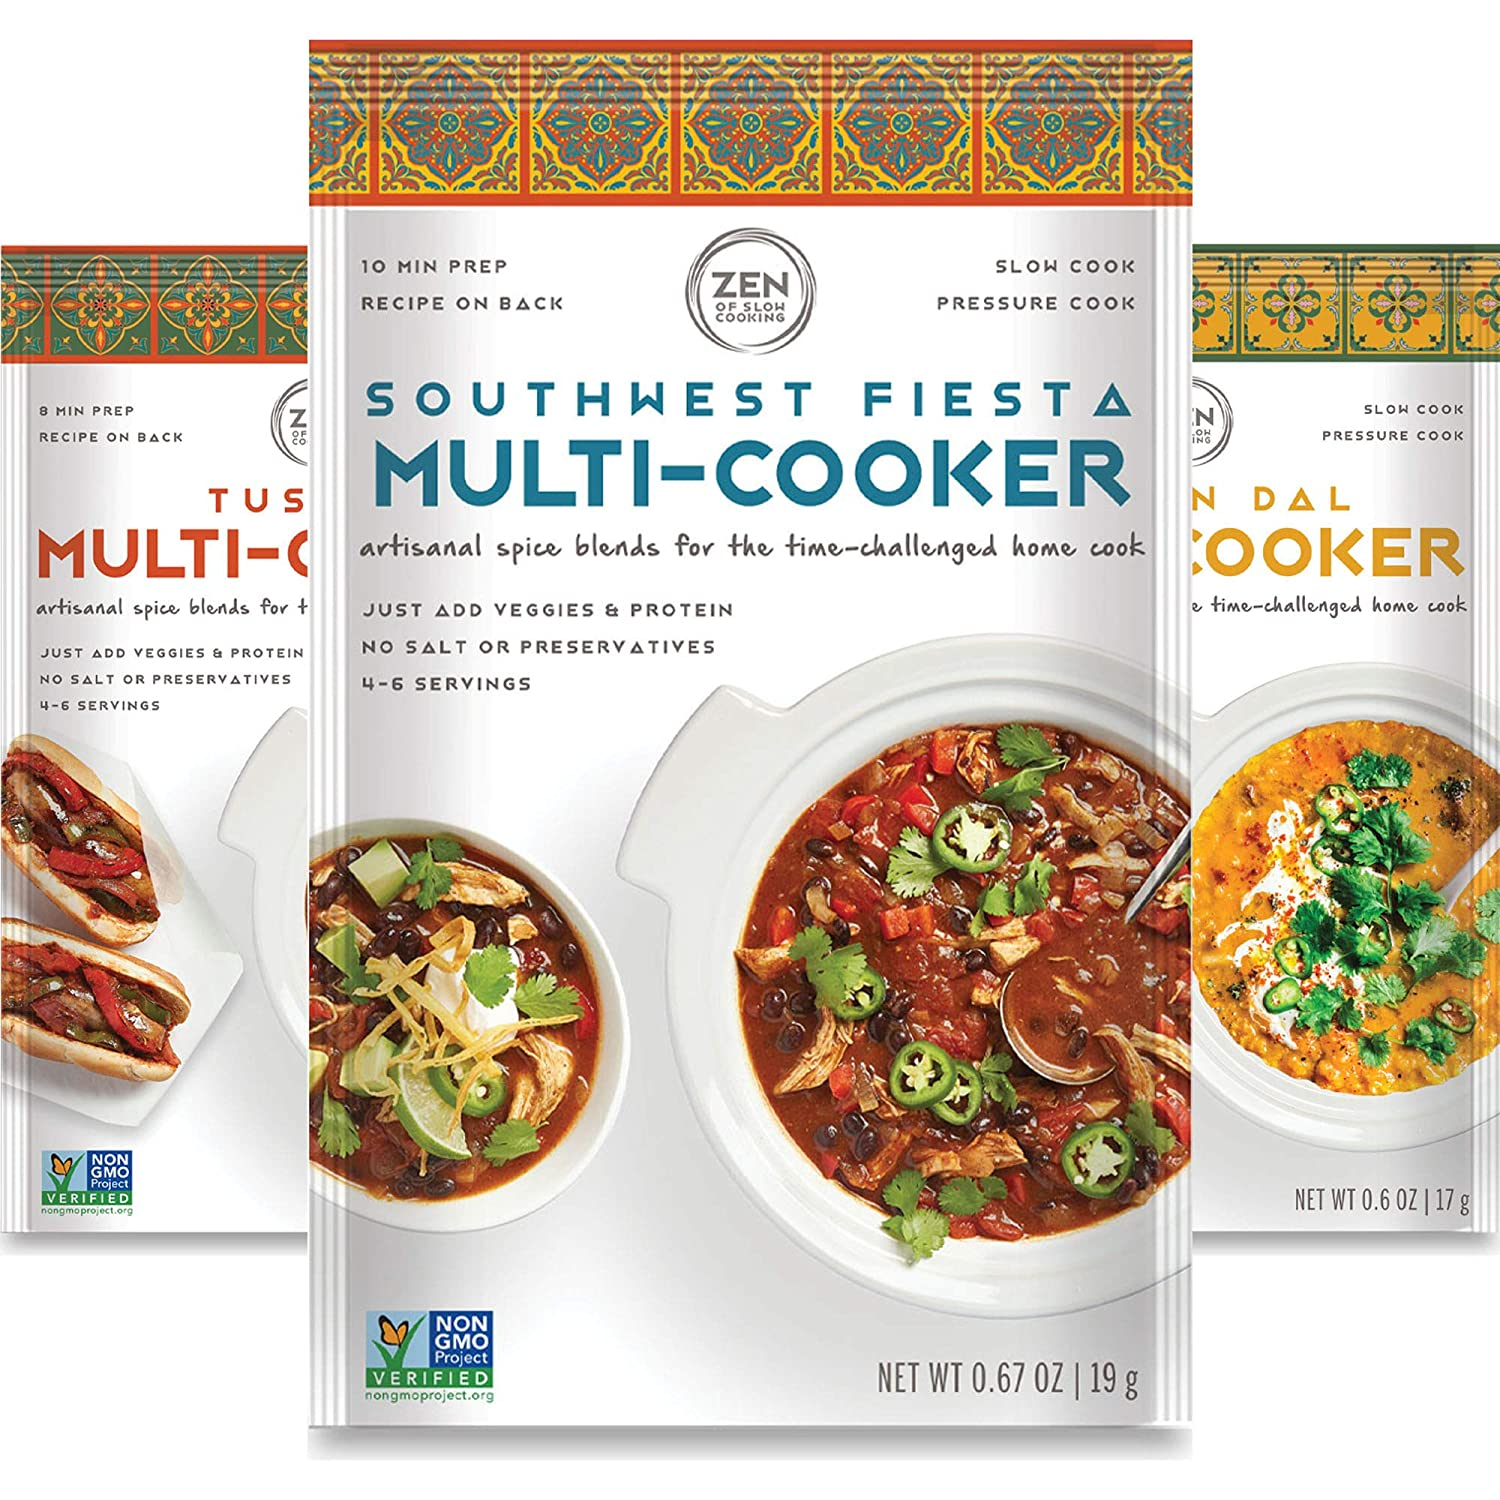 Chefs Collection Gourmet Spice Blends for Home Cooking (Pack of 6) Seasoning Pack For Instant Pot, Crock pot, Slow Cooker, and One Pot Meals - Non GMO, Low/No Salt, Gluten Free, Keto Friendly, Paleo